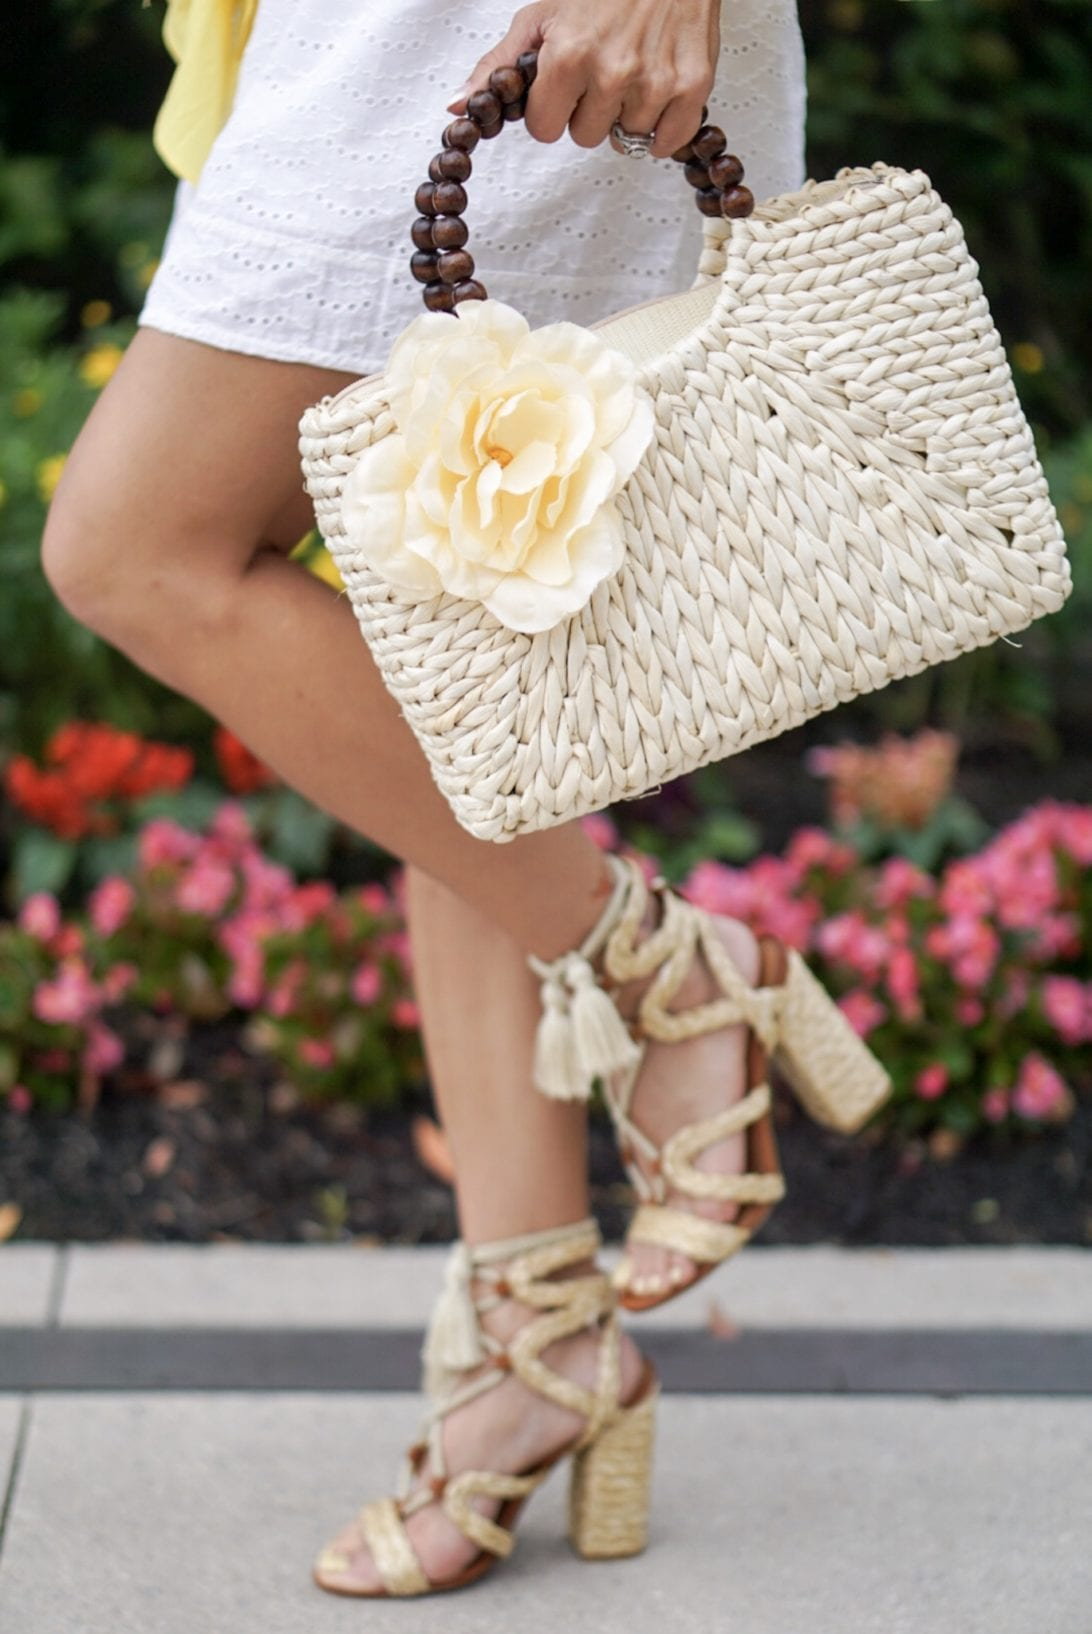 lace up blog heels, summer heels, summer sandals, floral summer bag, beach bag, straw bag